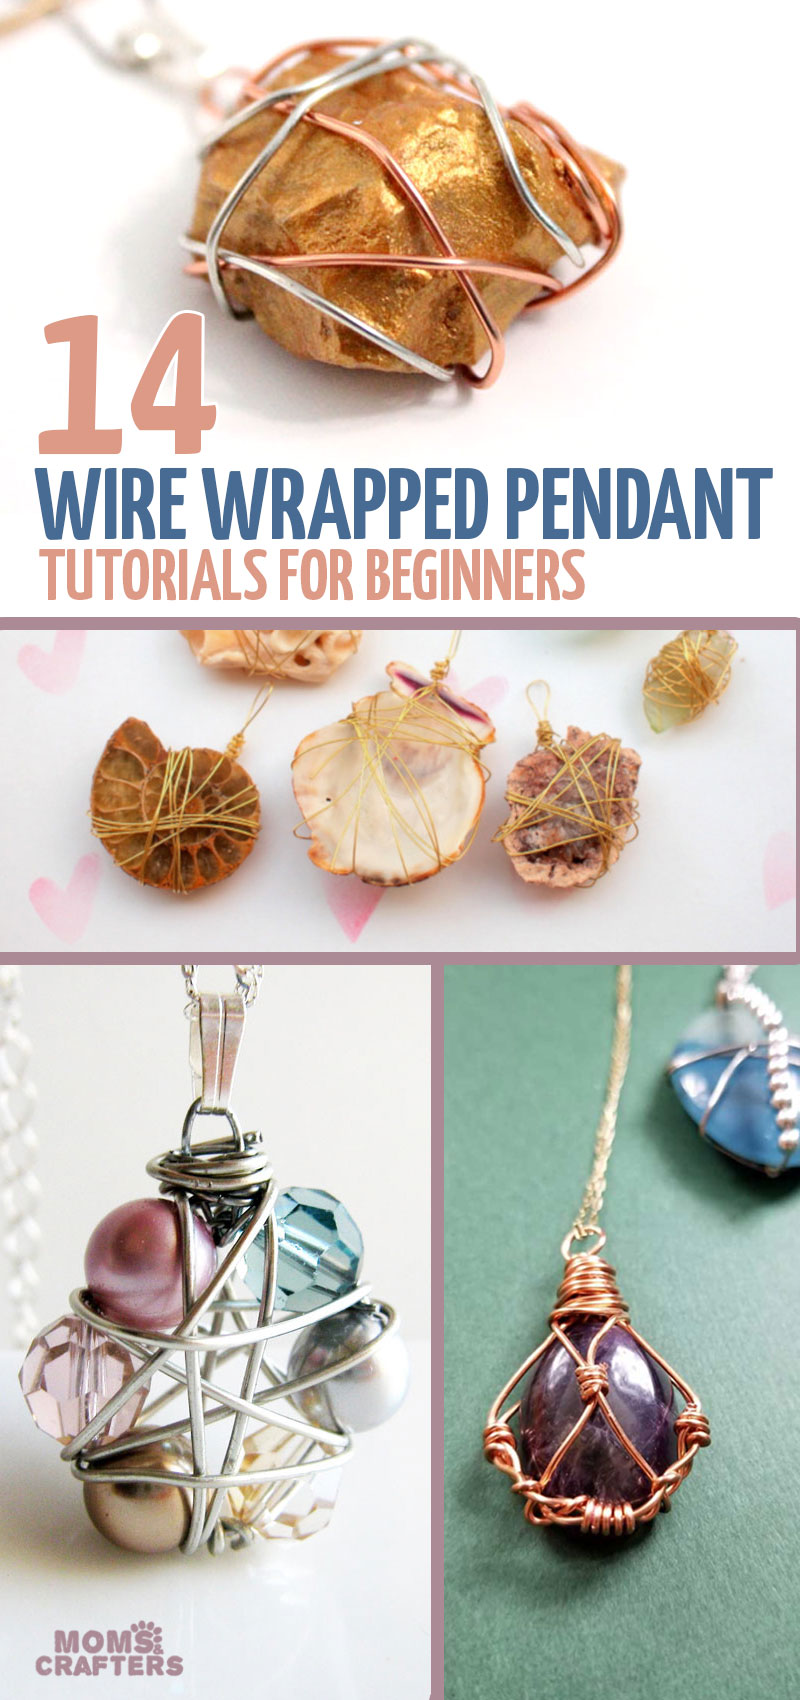 Click to learn how to wire wrap a pendant with 14 cool jewelry making projects for beginners!